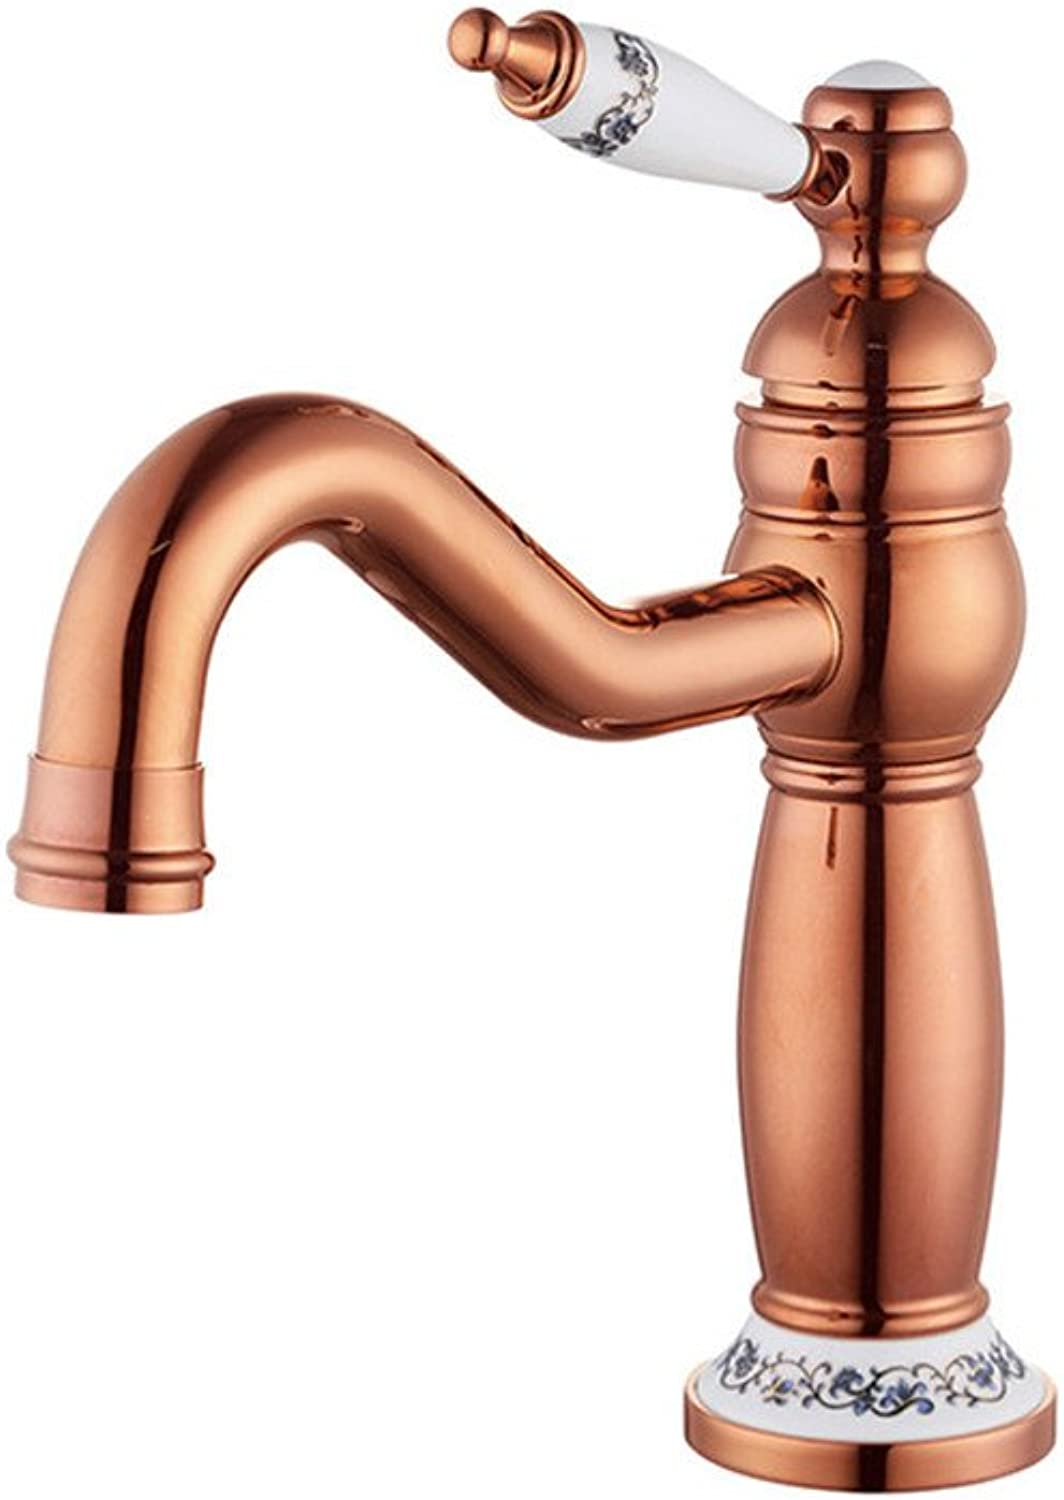 Hlluya Professional Sink Mixer Tap Kitchen Faucet Hot and cold basin tap full copper single handle basin mixer